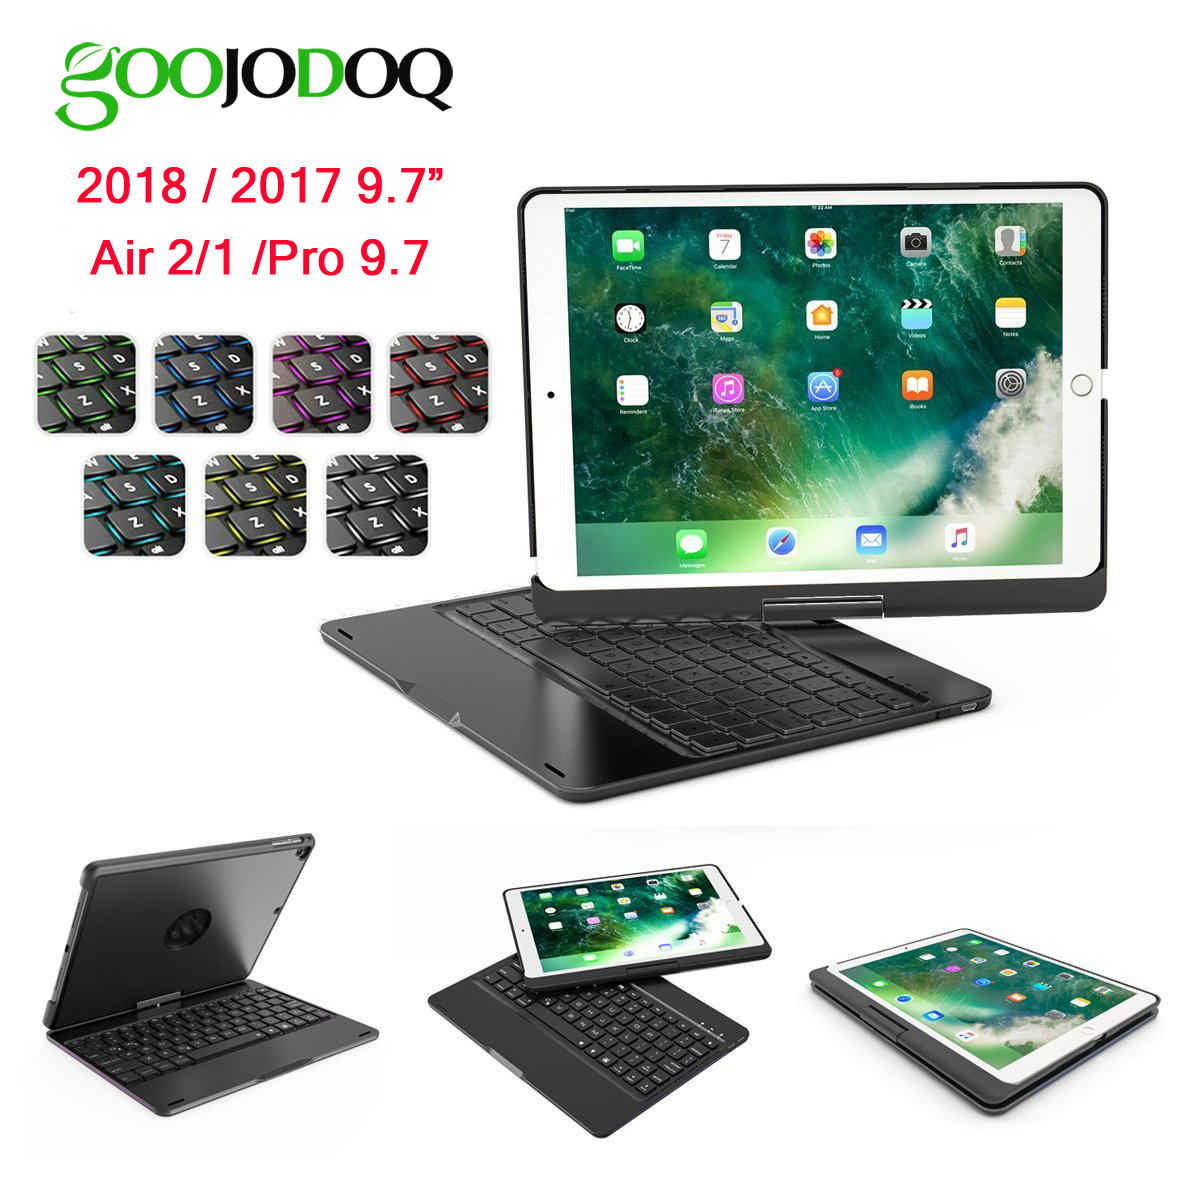 GOOJODOQ Backlit Wireless Bluetooth Keyboard Case for iPad 2018 9.7 2017 Pro 9.7 for iPad Air 2 / Air 1 Case Smart Folio Cover saniter apply to hp 840 g2 lcd screen display ltn140kt13 n140fge ea2 14 inch 30 pin laptop lcd screen